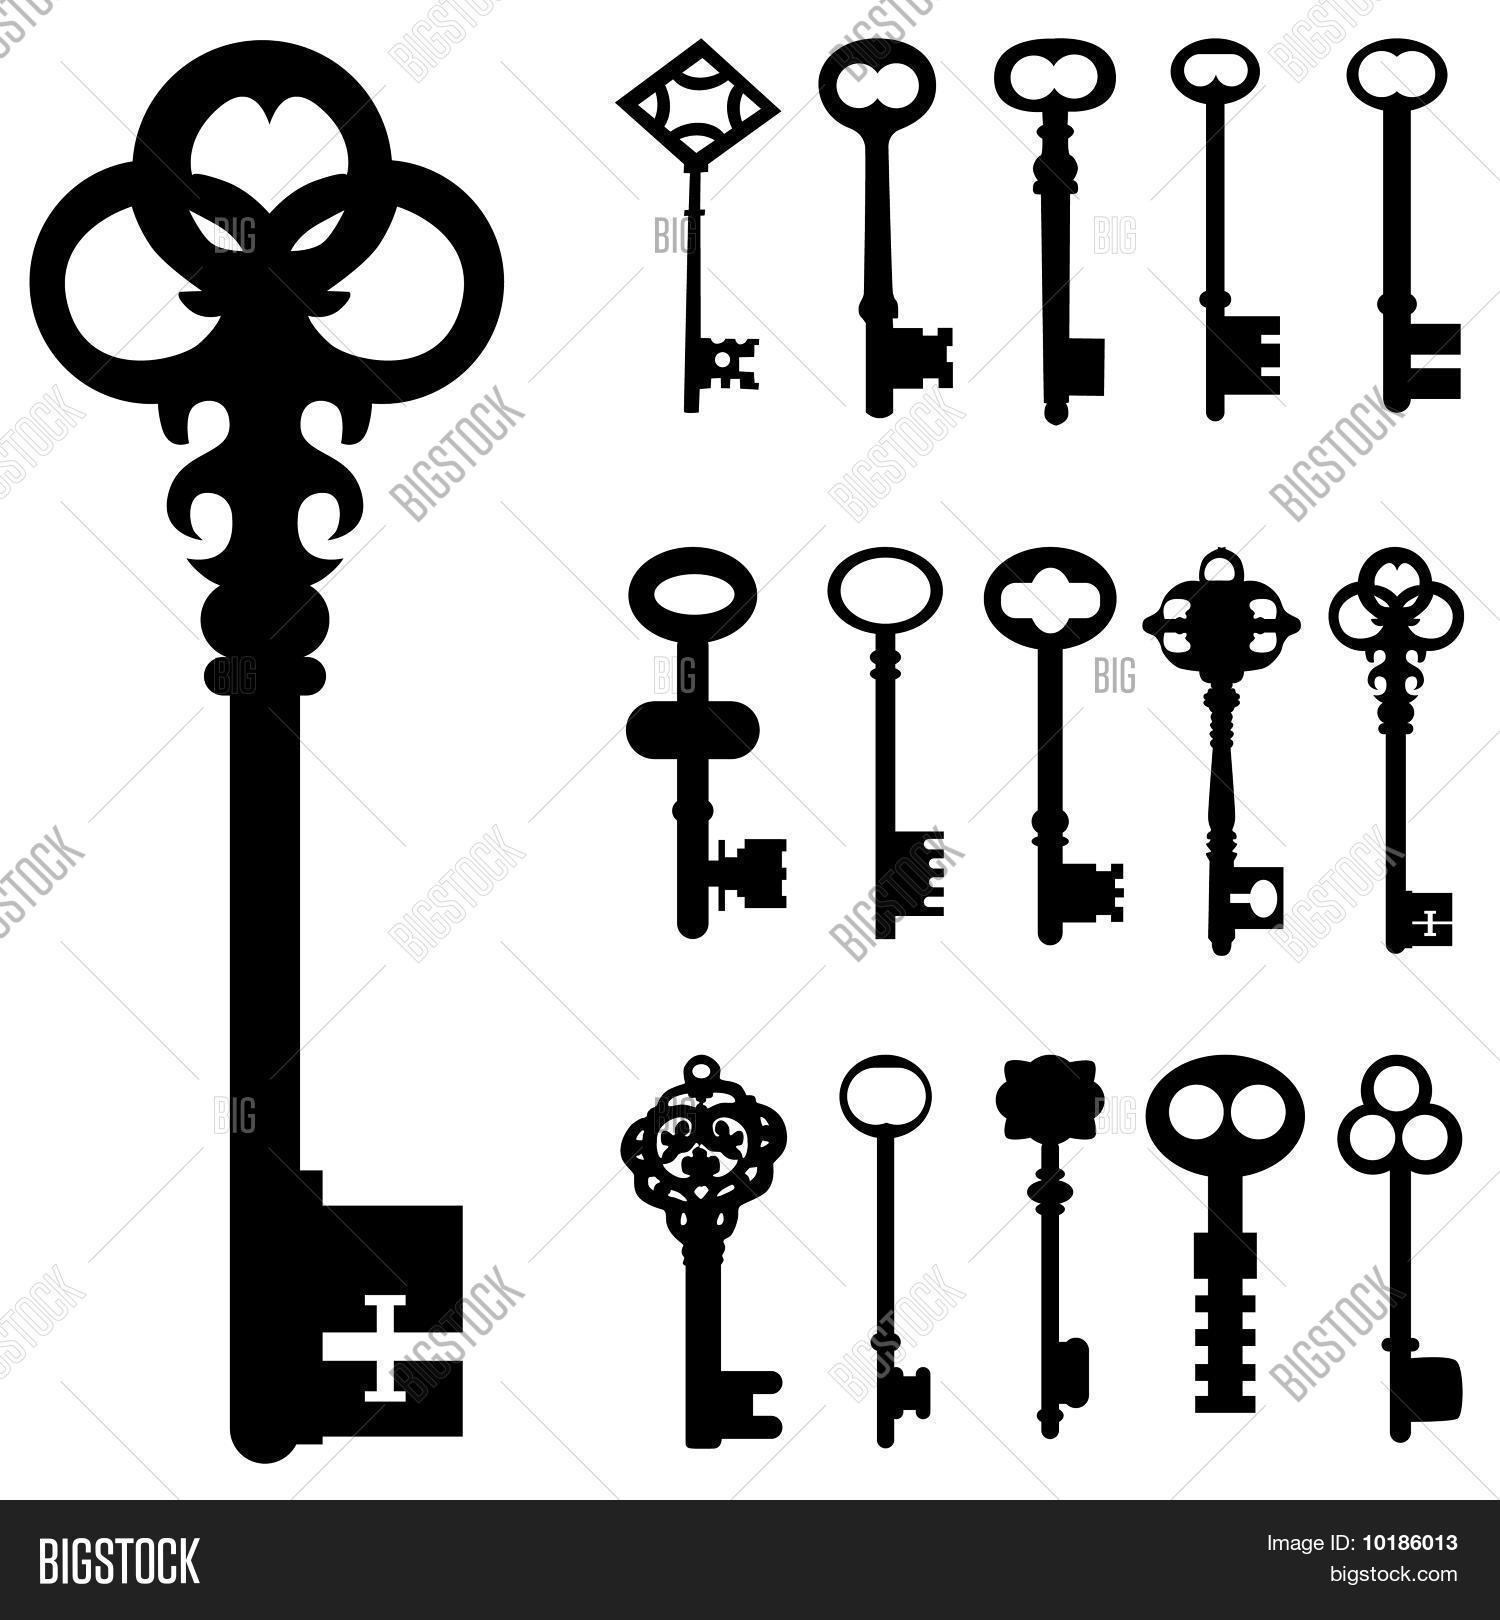 skeleton key images illustrations vectors free bigstock rh bigstockphoto com skeleton key vector free skeleton key vector free download